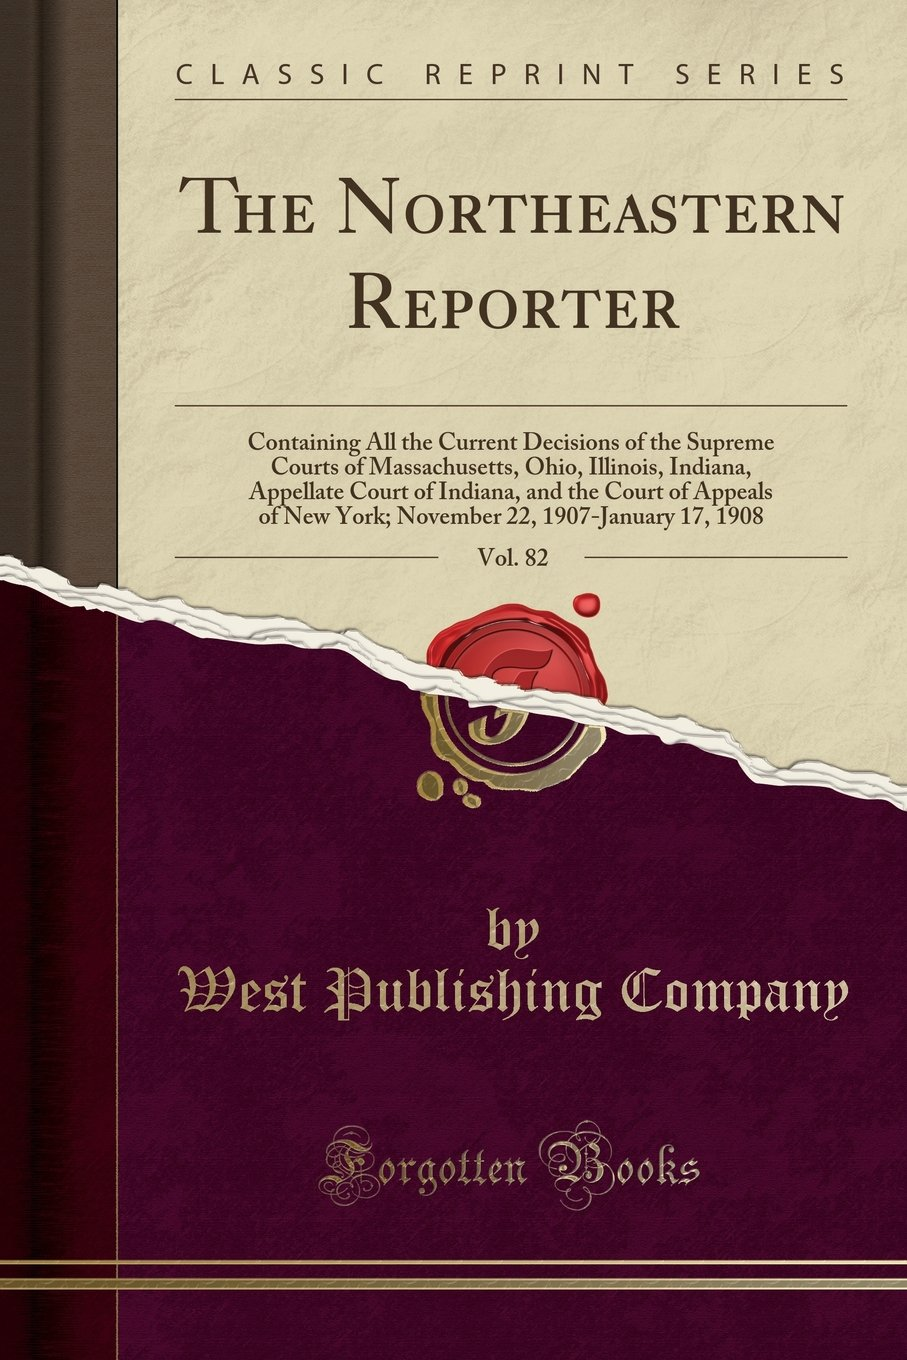 The Northeastern Reporter, Vol. 82: Containing All the Current Decisions of the Supreme Courts of Massachusetts, Ohio, Illinois, Indiana, Appellate ... New York; November 22, 1907-January 17, 1908 ebook